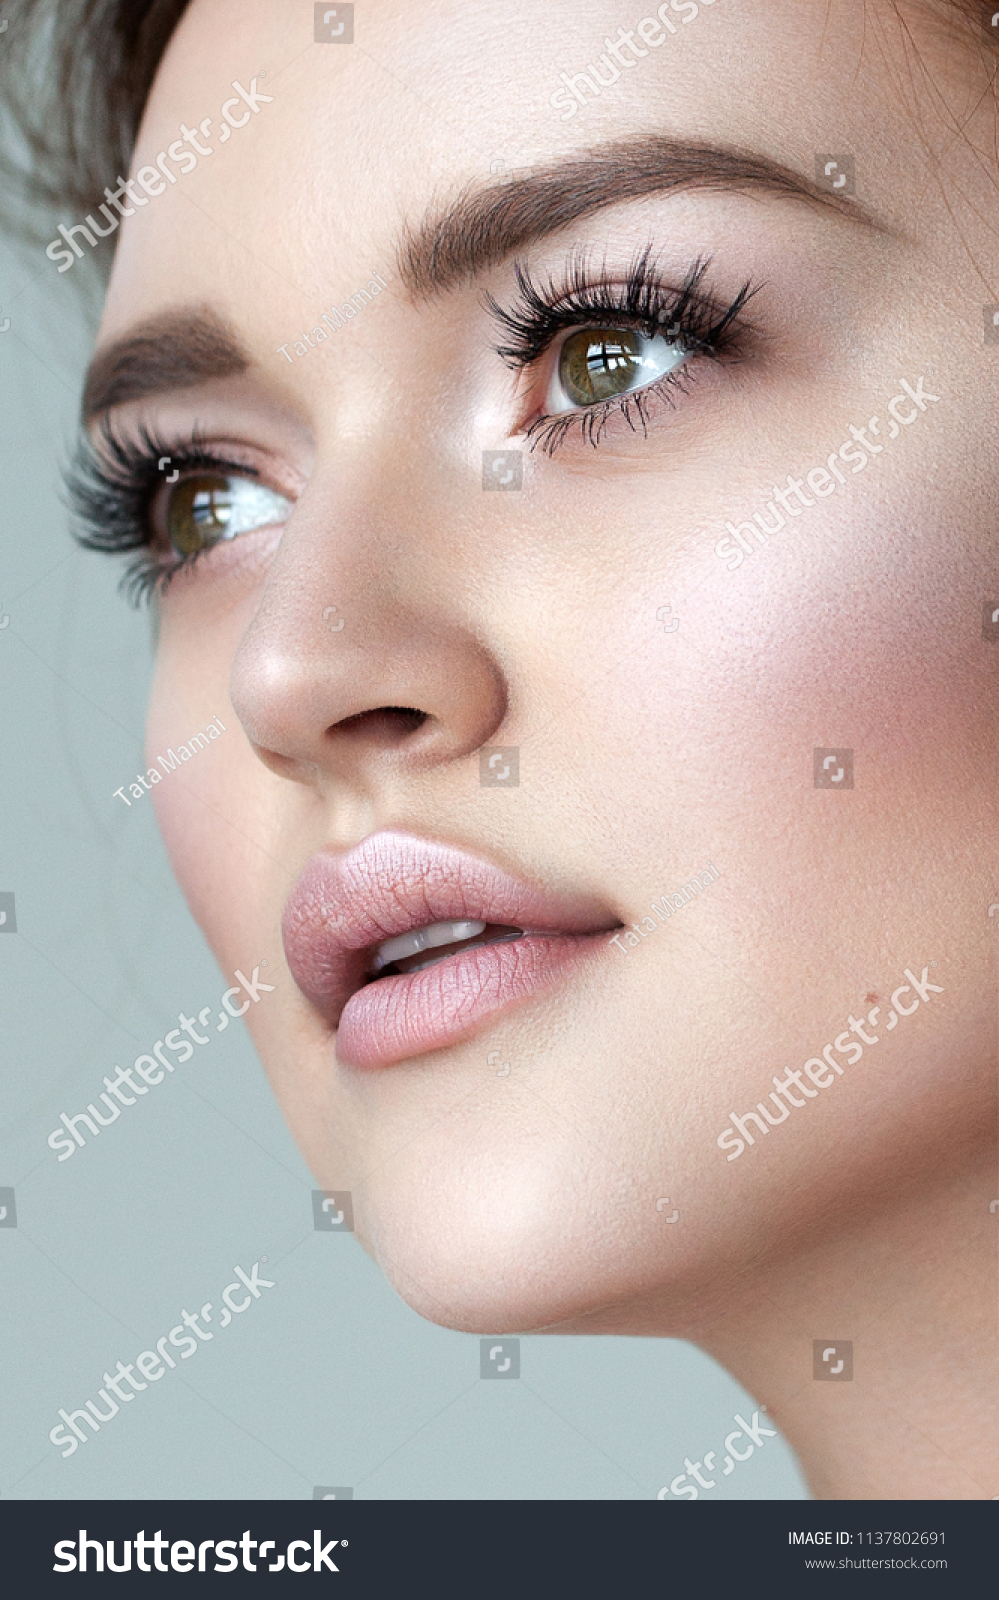 Nude Look Perfect Model Fresh Natural Look Nude Stock Photo (edit Now) 1137802691